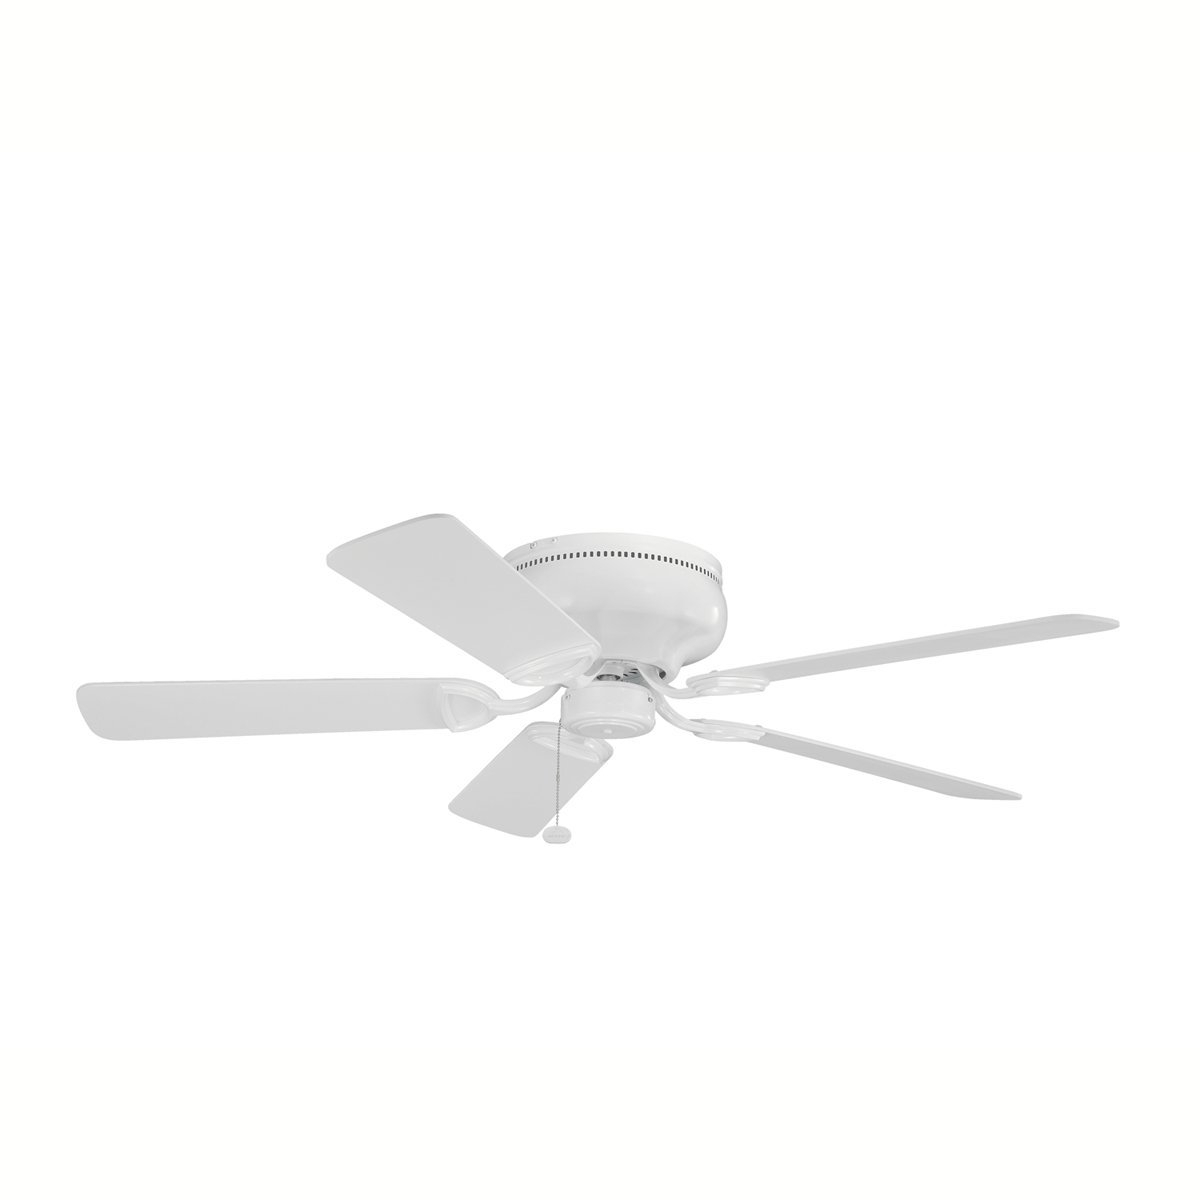 Flush Mount Ceiling Fans Without Lights Big Outdoor Ceiling Fan With For Preferred Outdoor Ceiling Fans Flush Mount With Light (View 14 of 20)